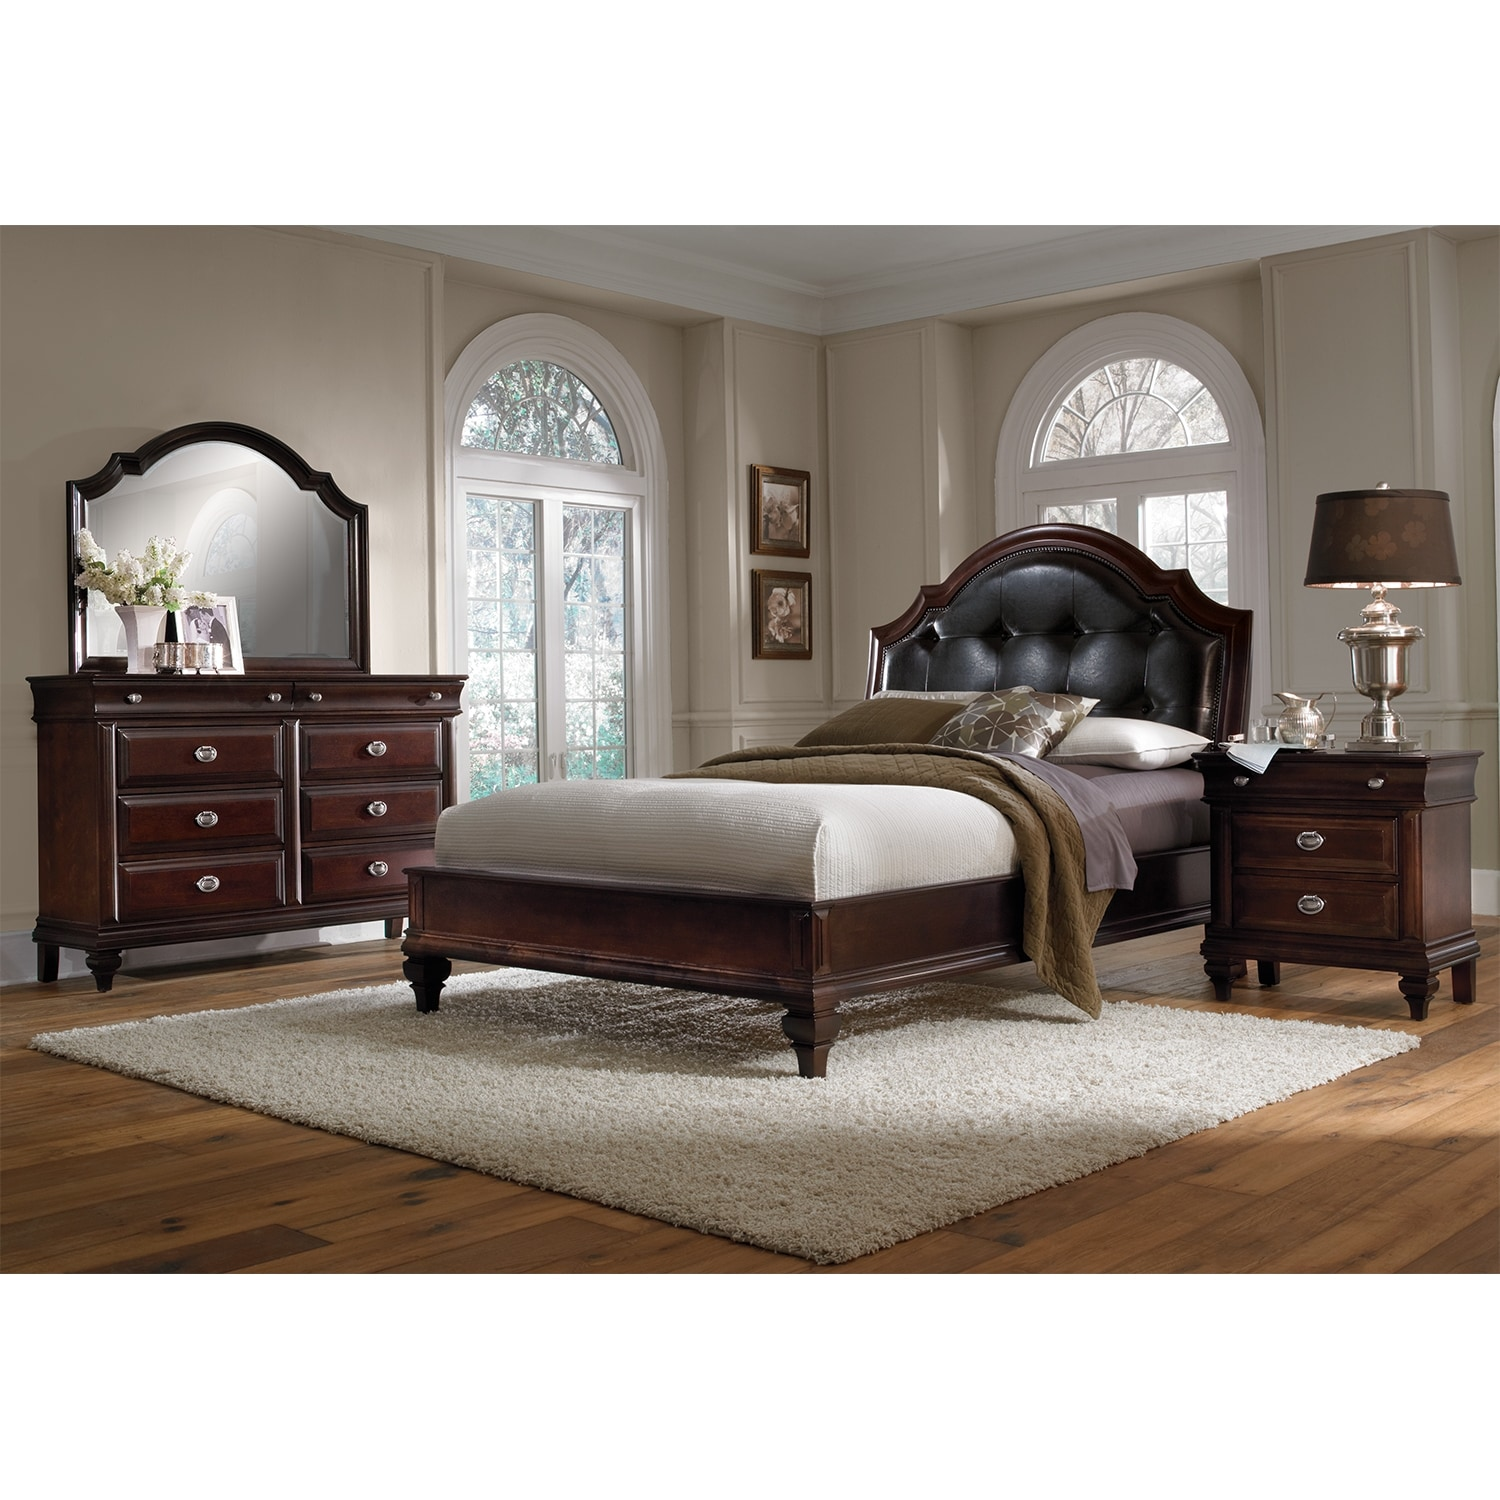 Bedroom Furniture - Manhattan 6-Piece Queen Bedroom Set - Cherry